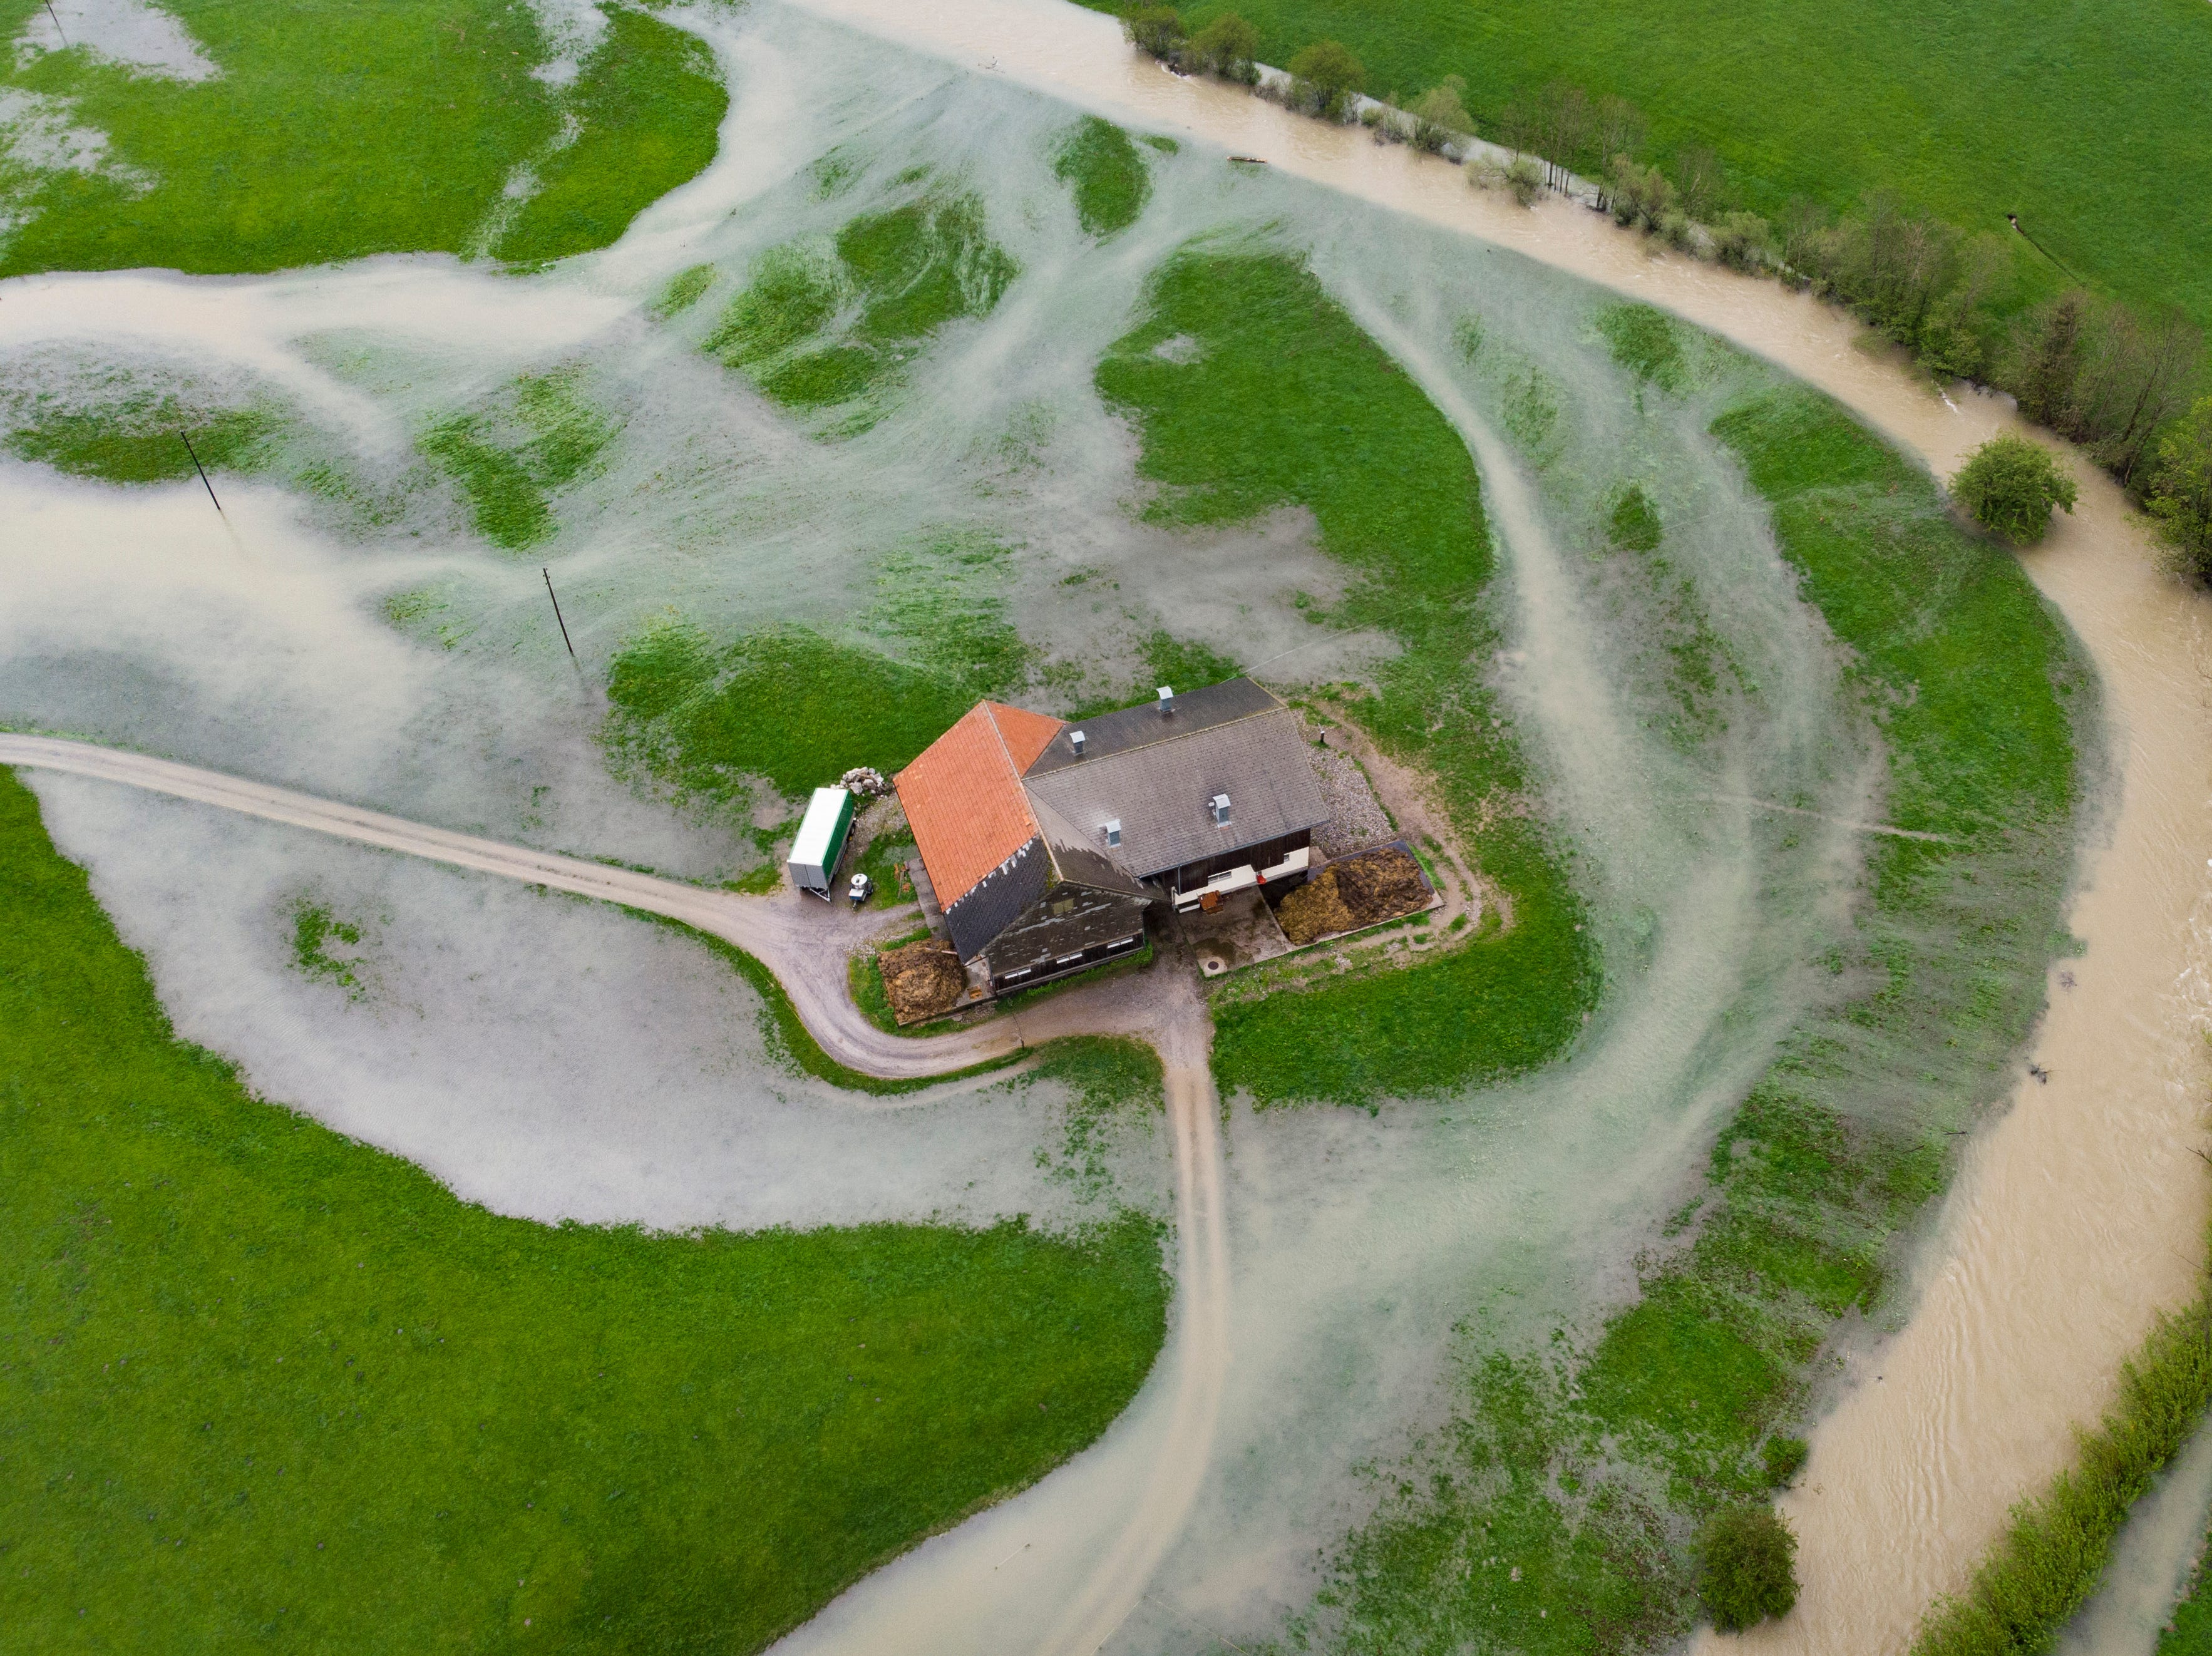 Heavy rainfall in eastern Switzerland led to the swelling and flooding of the river Thur  on Tuesday, May 21, 2019, in Alt St. Johann, Switzerland. There is currently heavy rainfall in Eastern Switzerland.